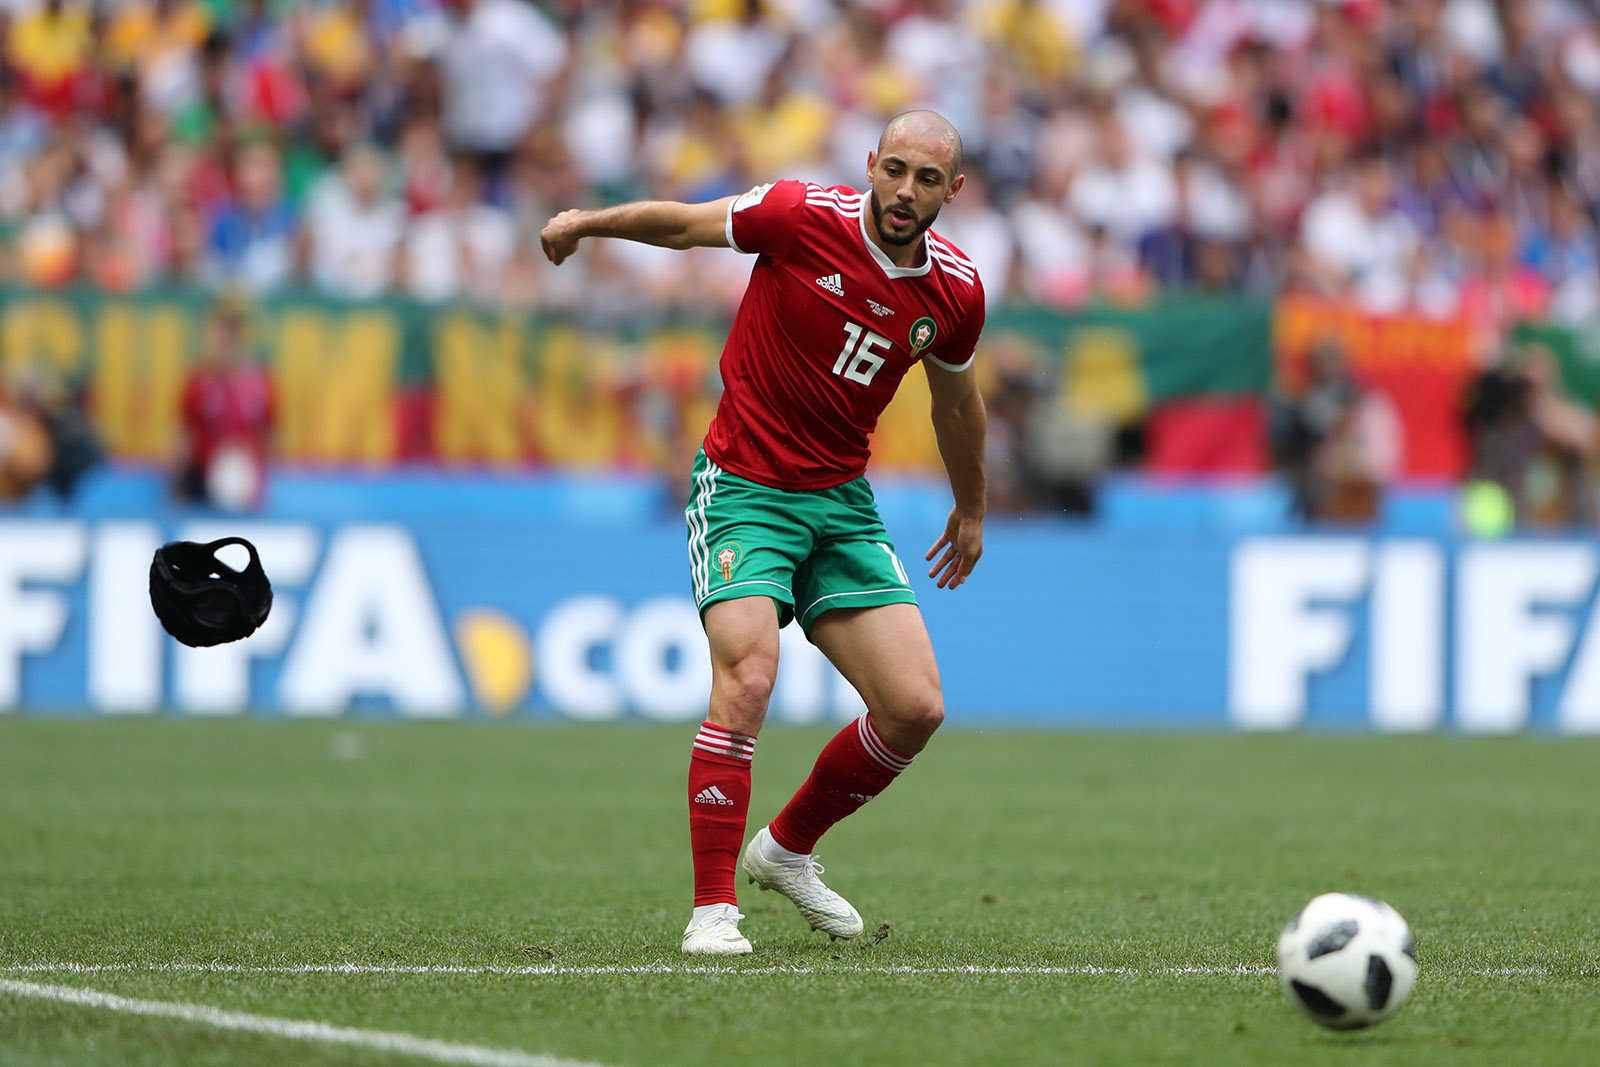 Noureddine Amrabat throwing aside his protective headgear during Morocco's match against Portugal at the Luzhniki Stadium, Moscow, Russia, June 20, 2018